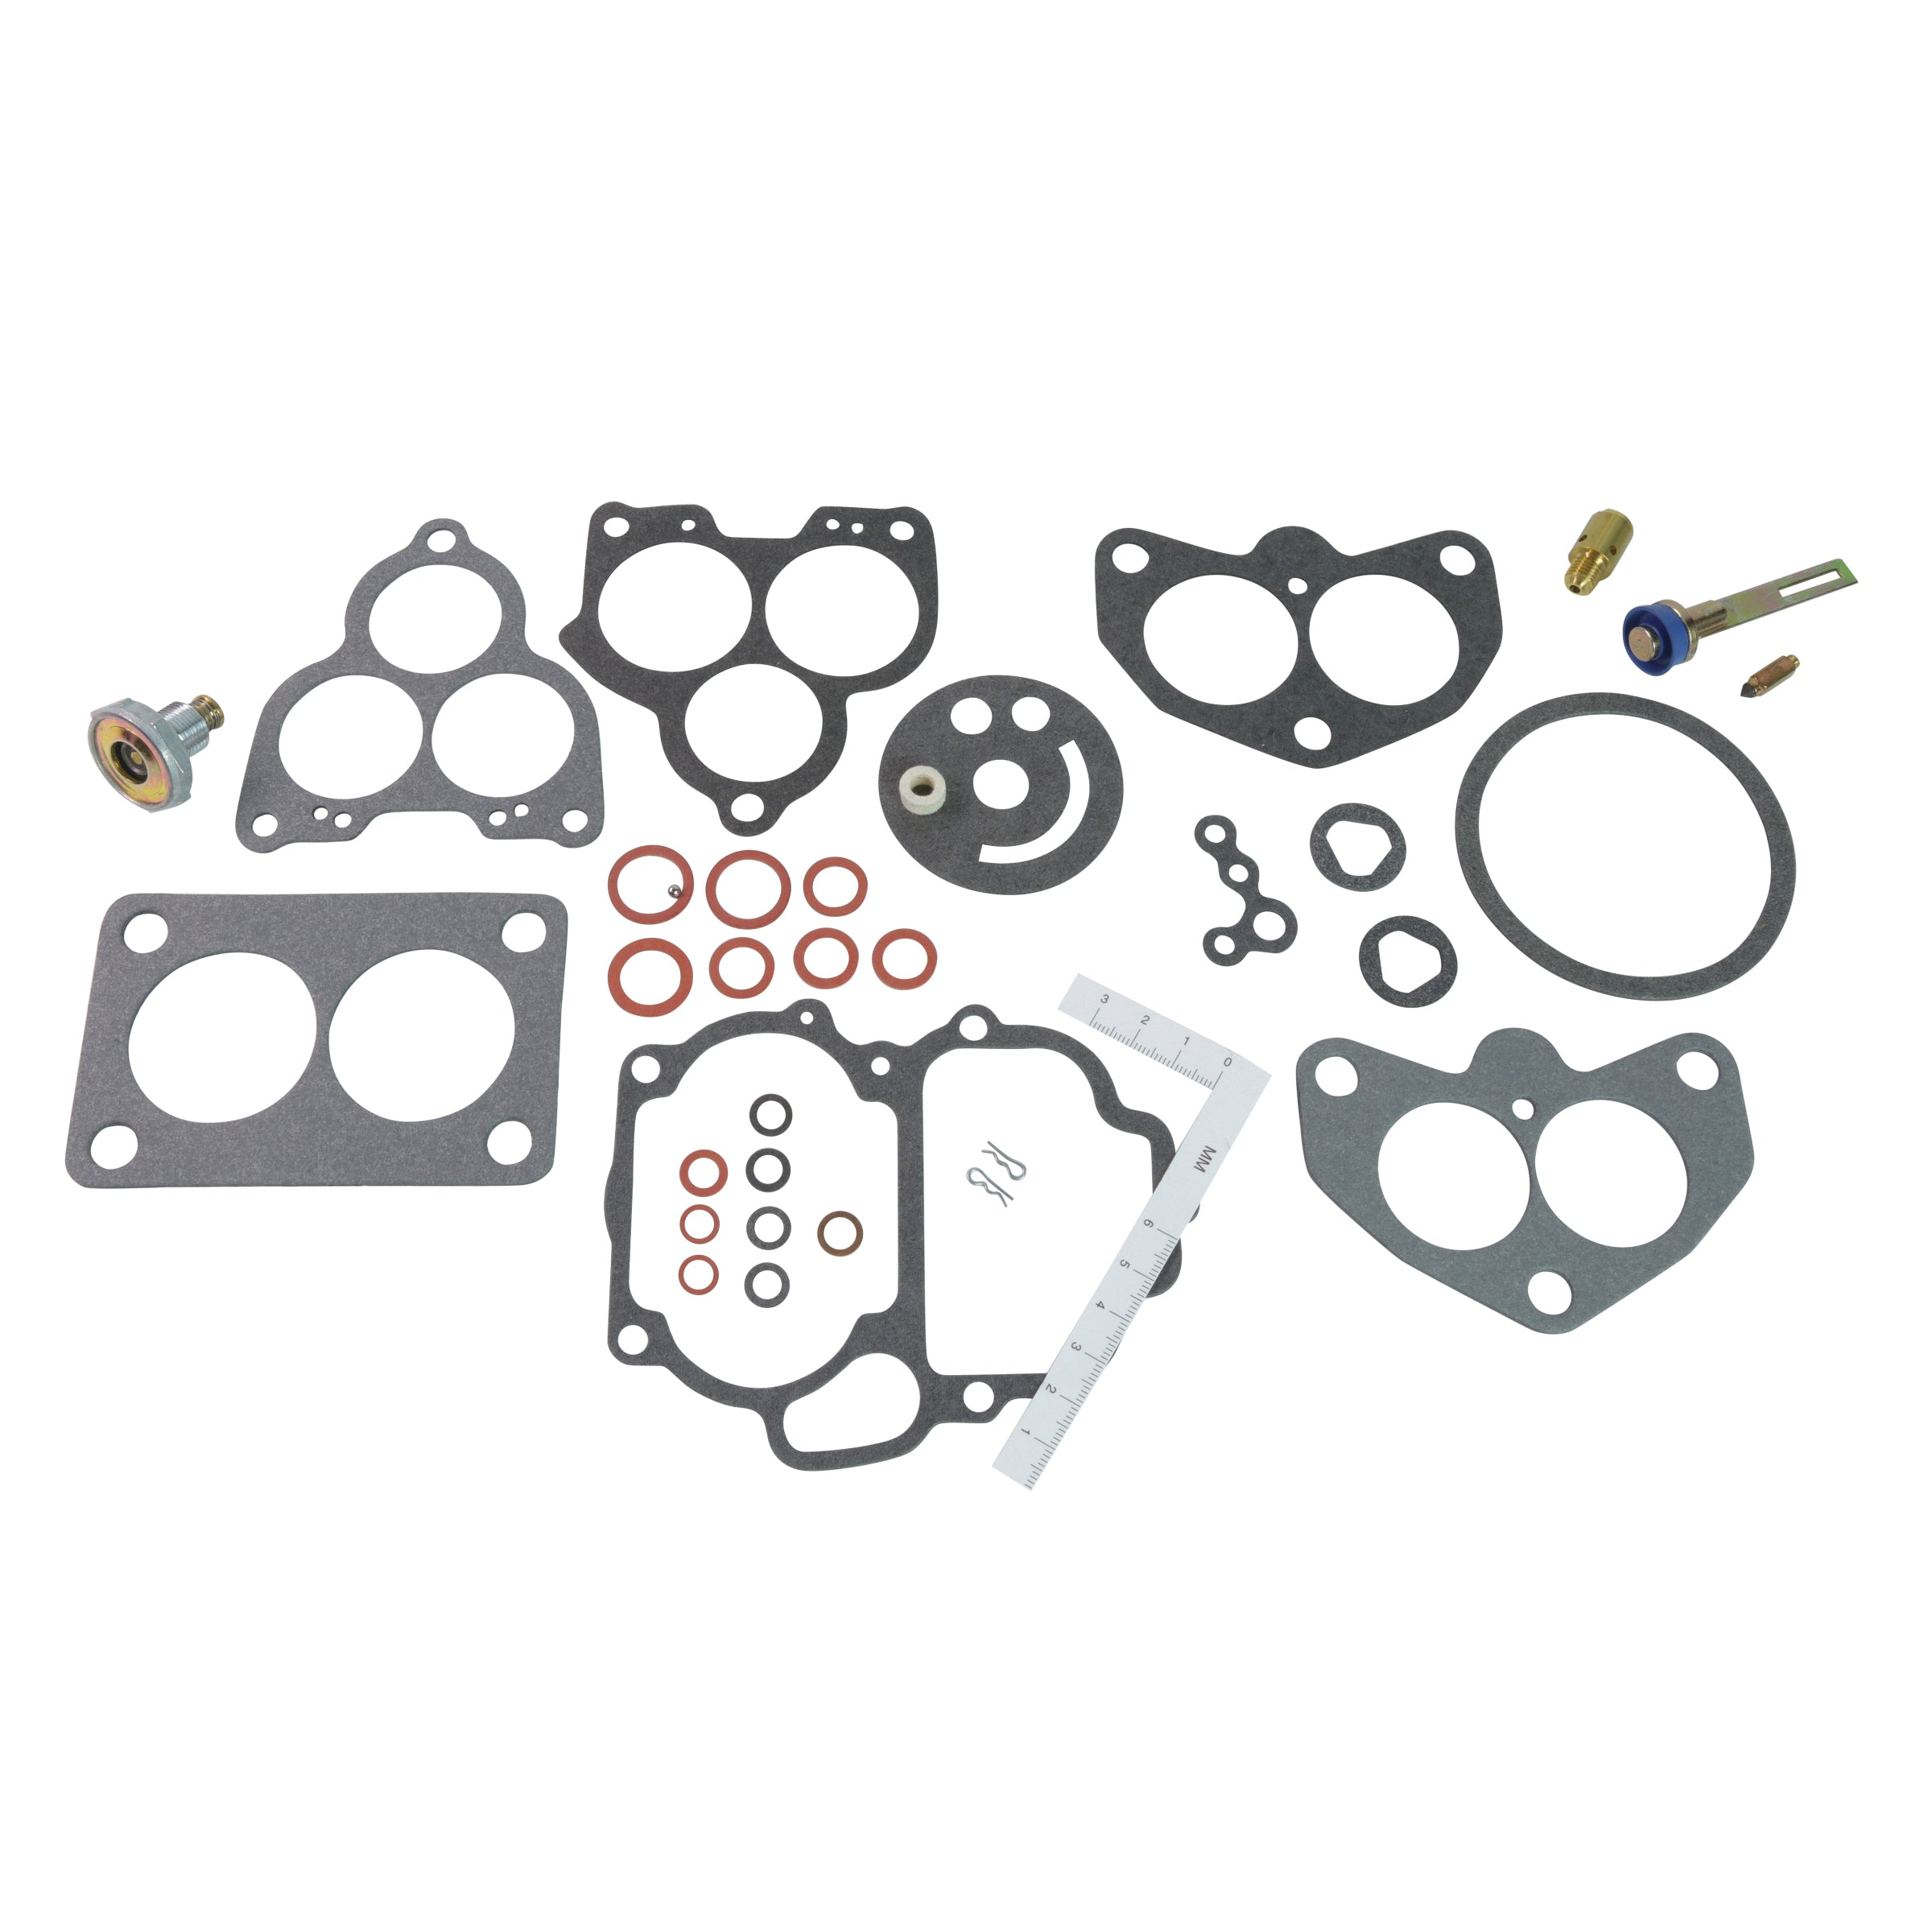 Holley Carburetor Rebuild Kit • 1939-53 Ford